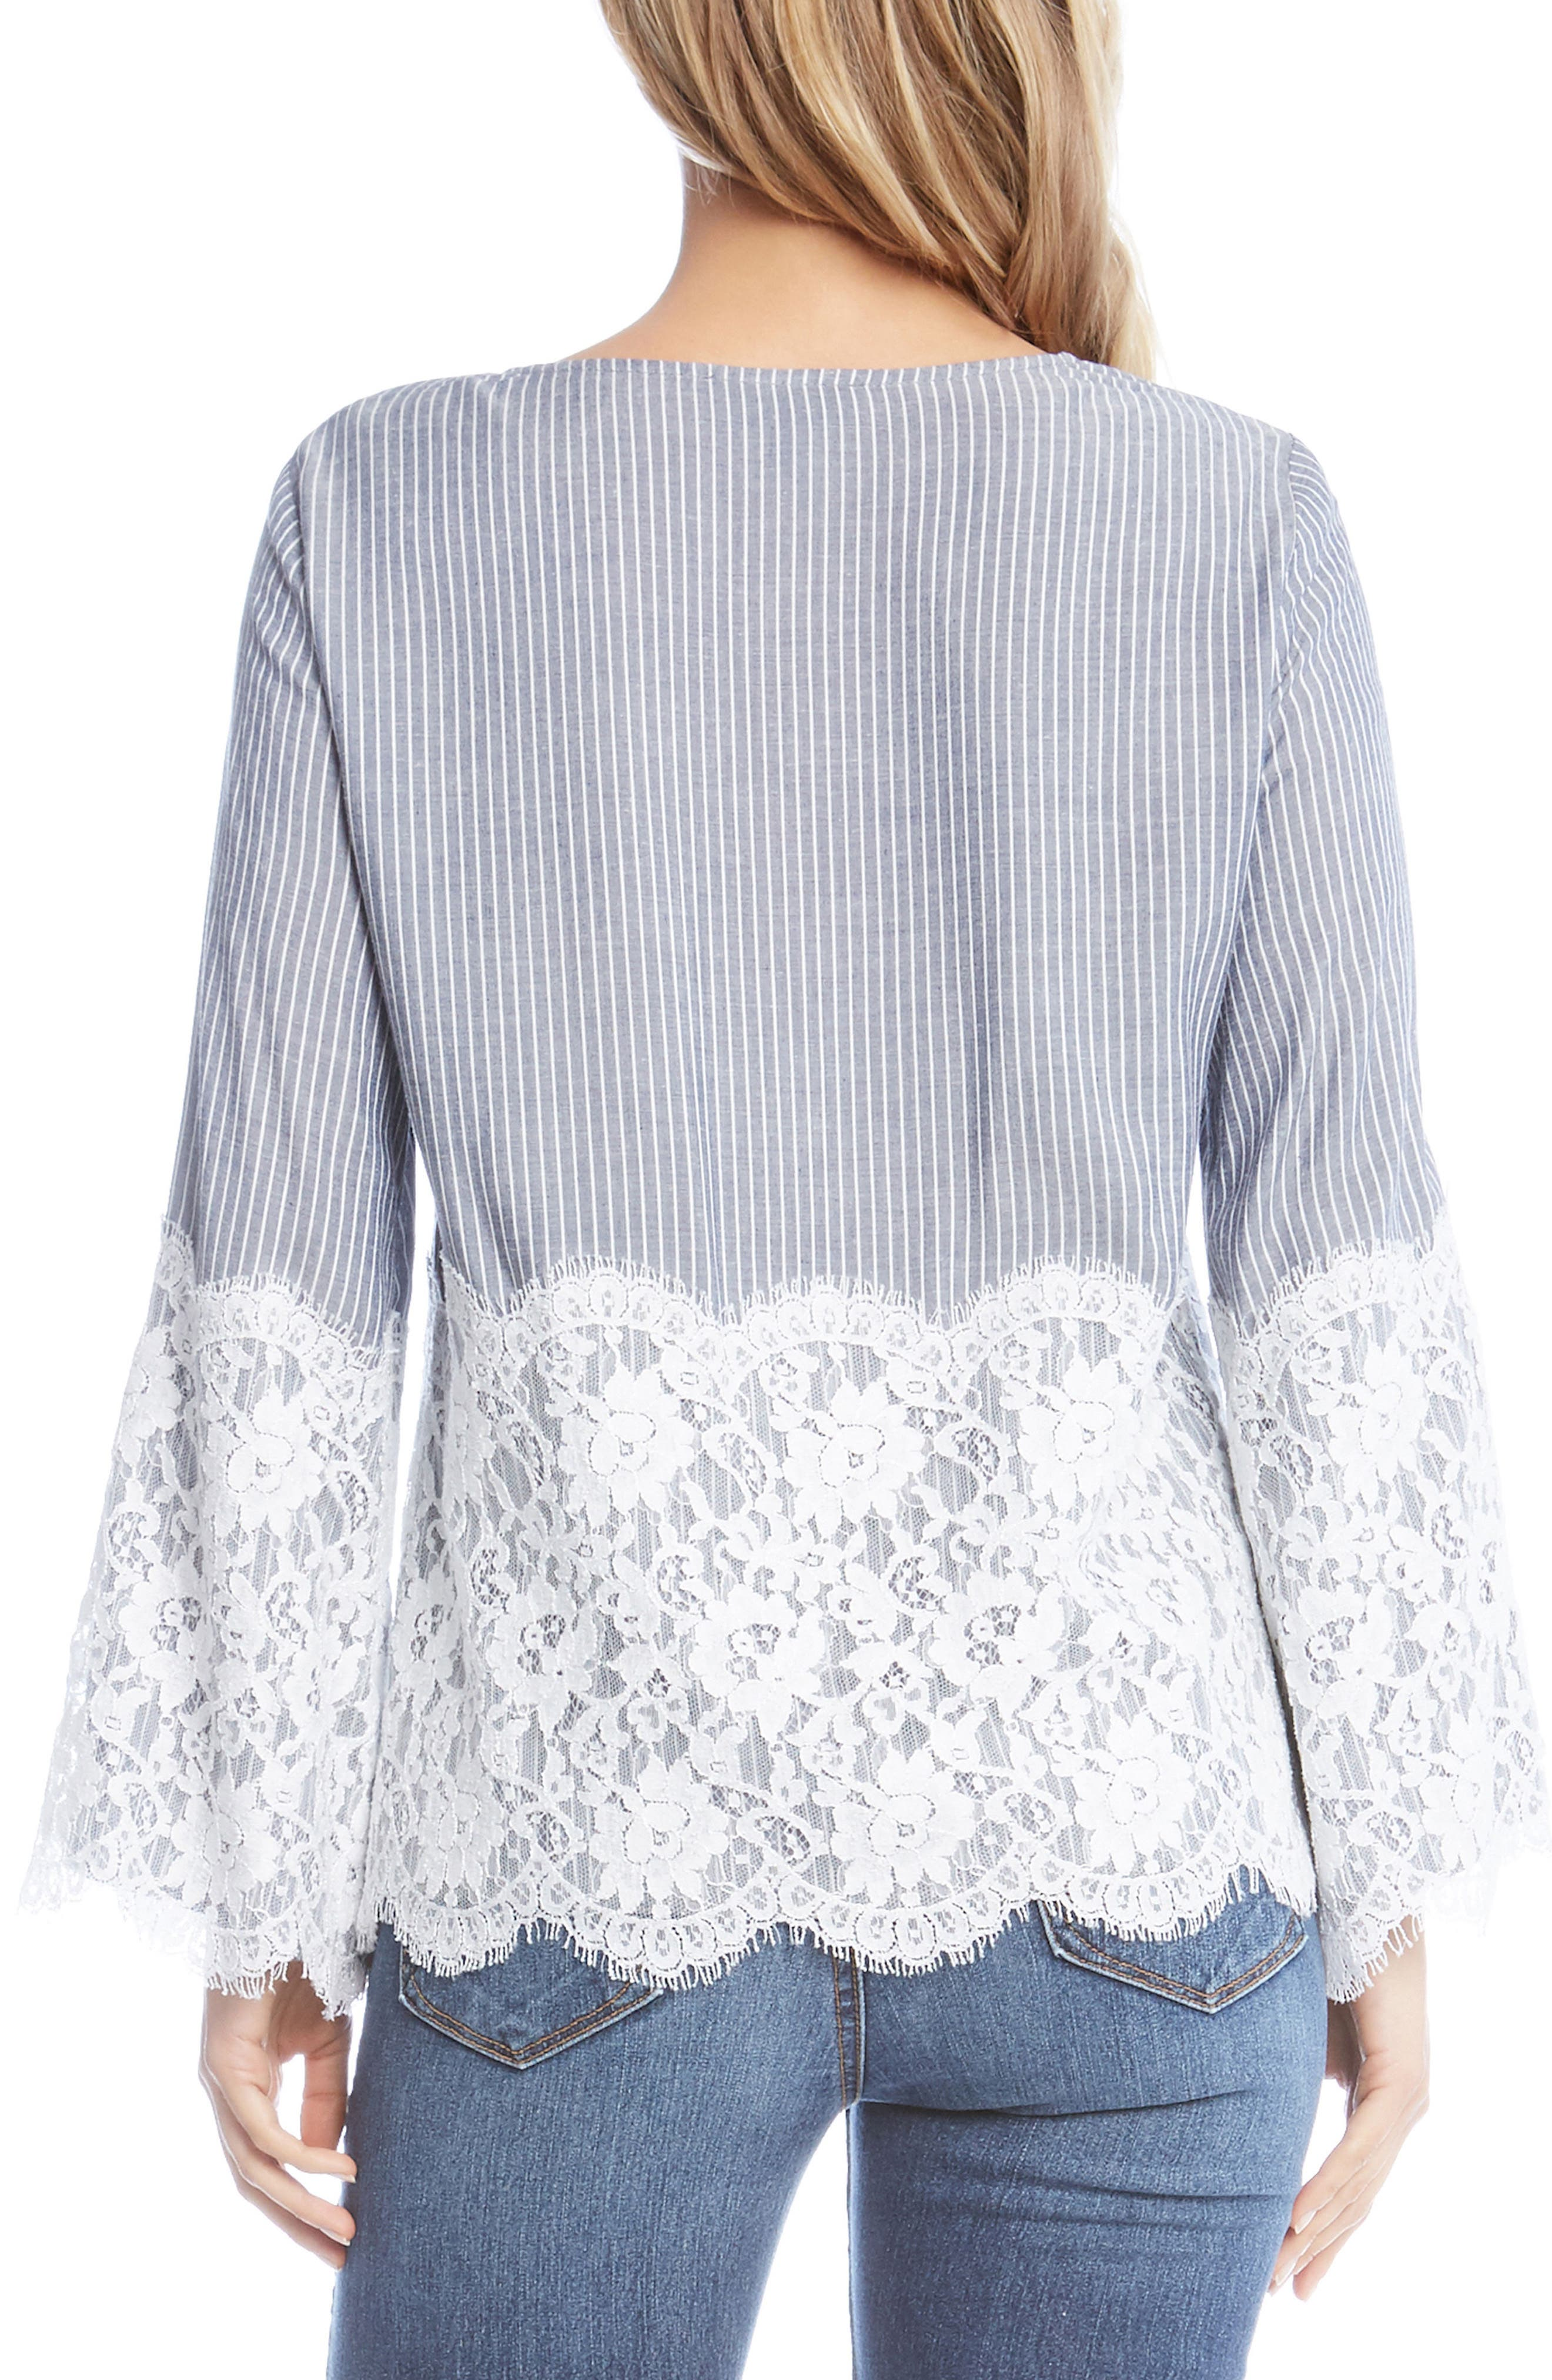 Chambray Stripe Lace Top,                             Alternate thumbnail 3, color,                             Striped